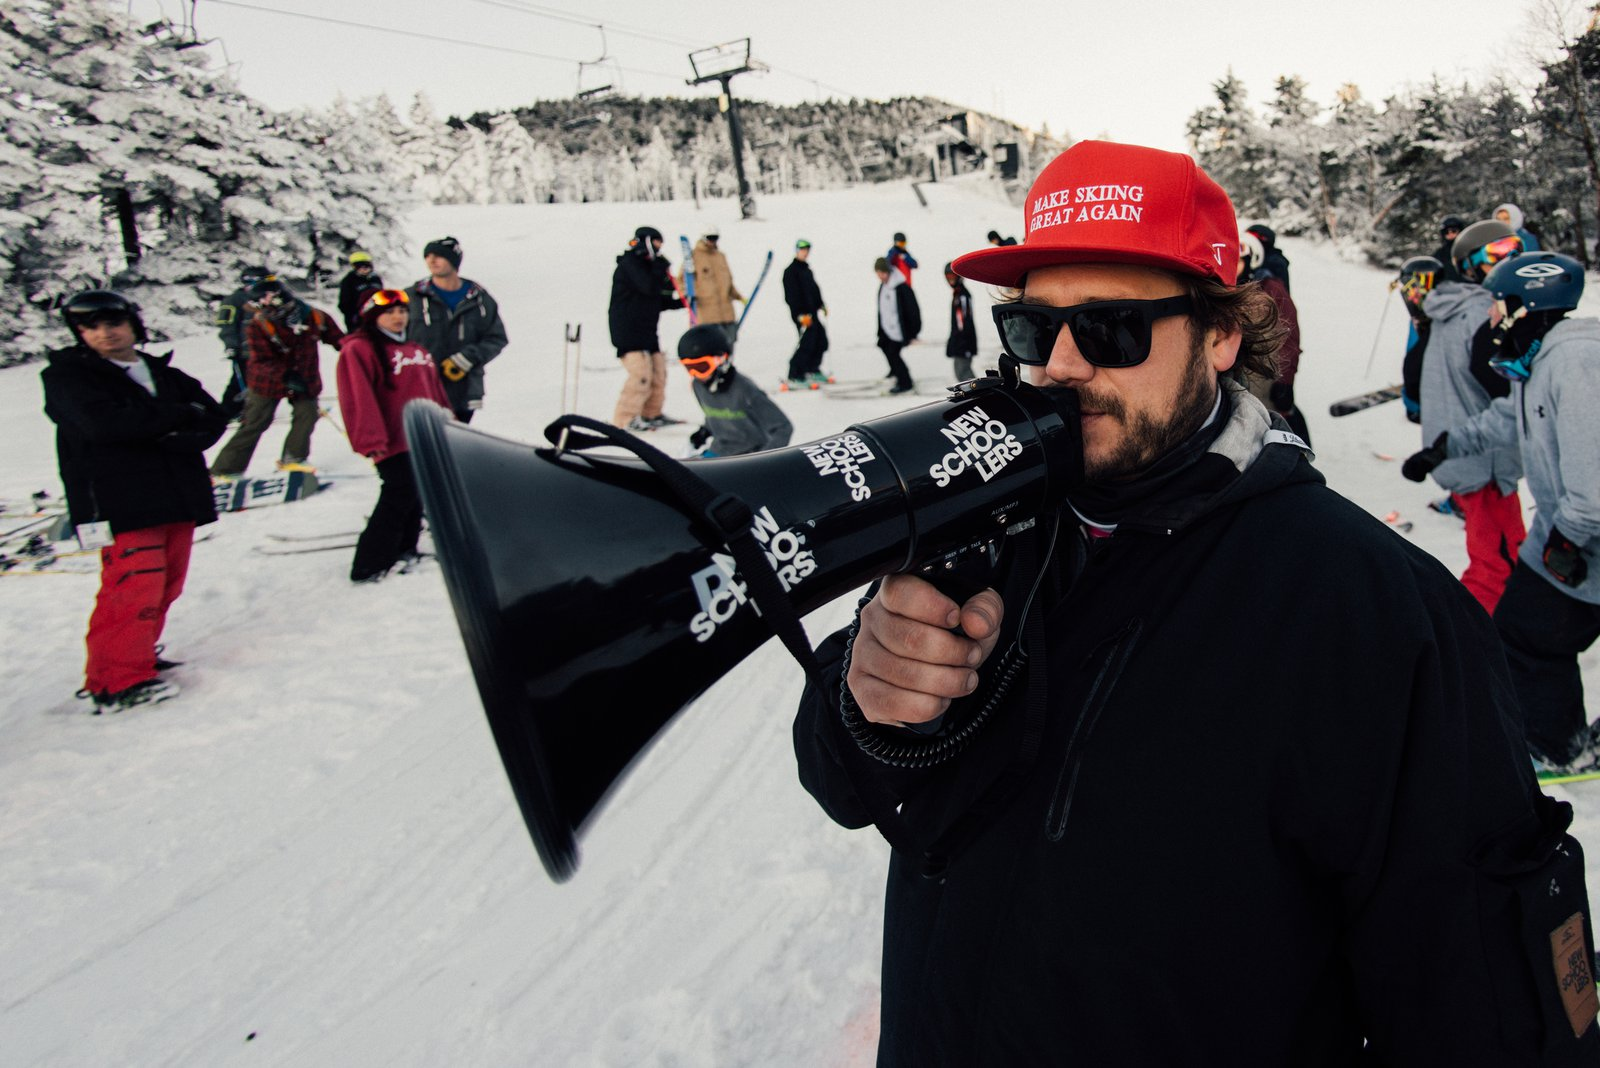 Mr. Bishop is Making Skiing Great Again